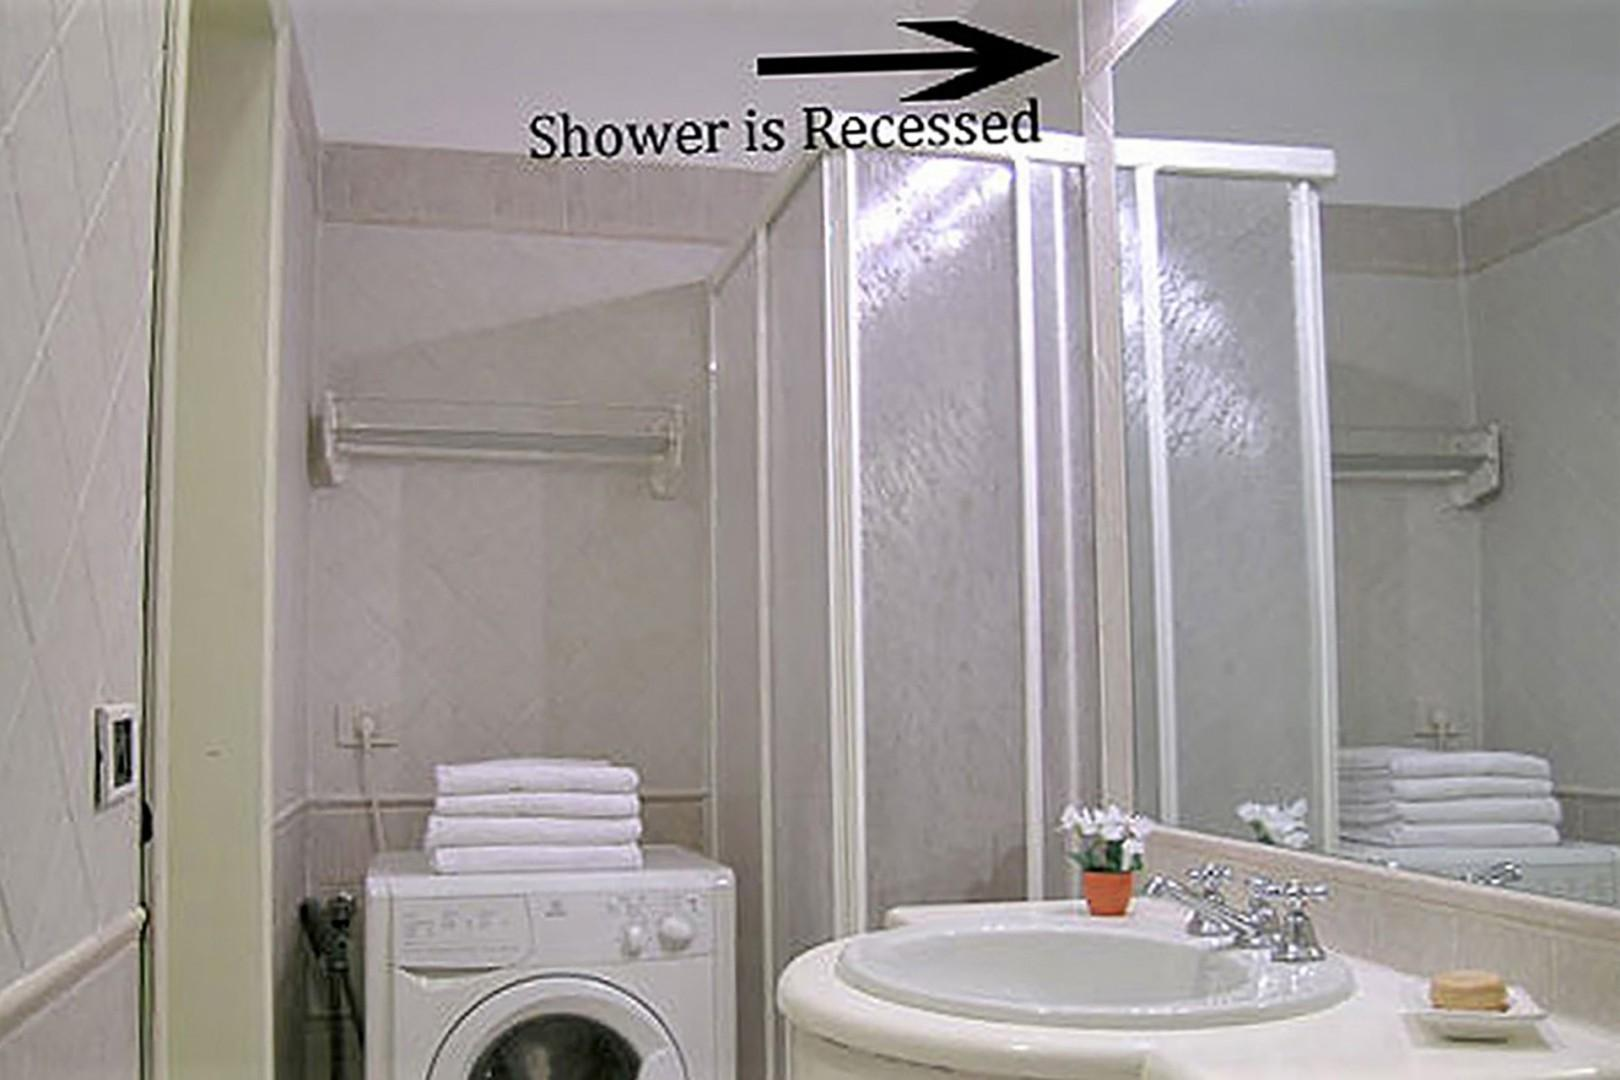 Washing machine and shower. Please note the photo is deceiving, the shower is recessed.